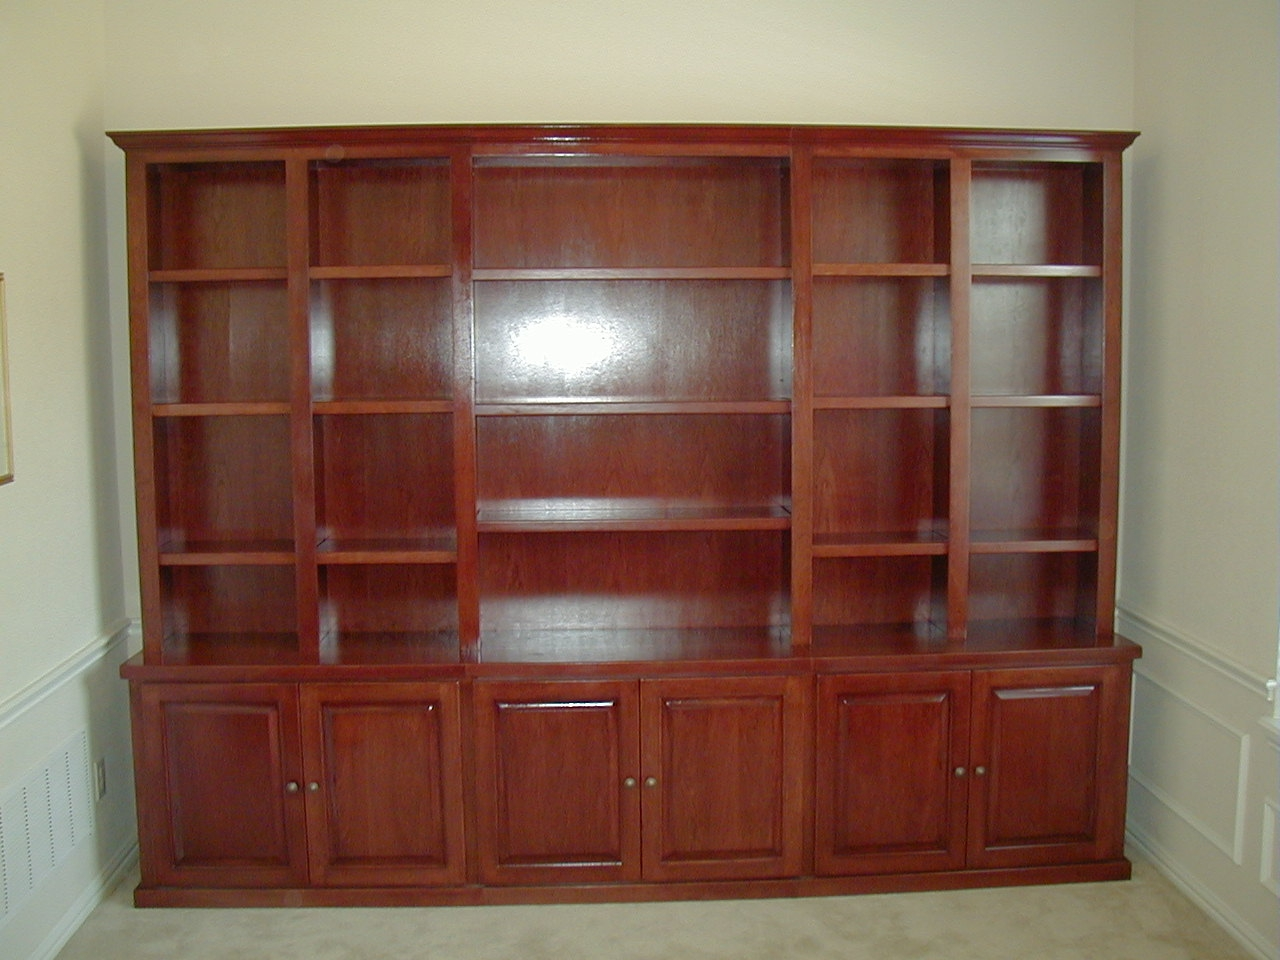 Bookcases Fiorenza Custom Woodworking Throughout Bookcase With Bottom Cabinets 3 Of 15